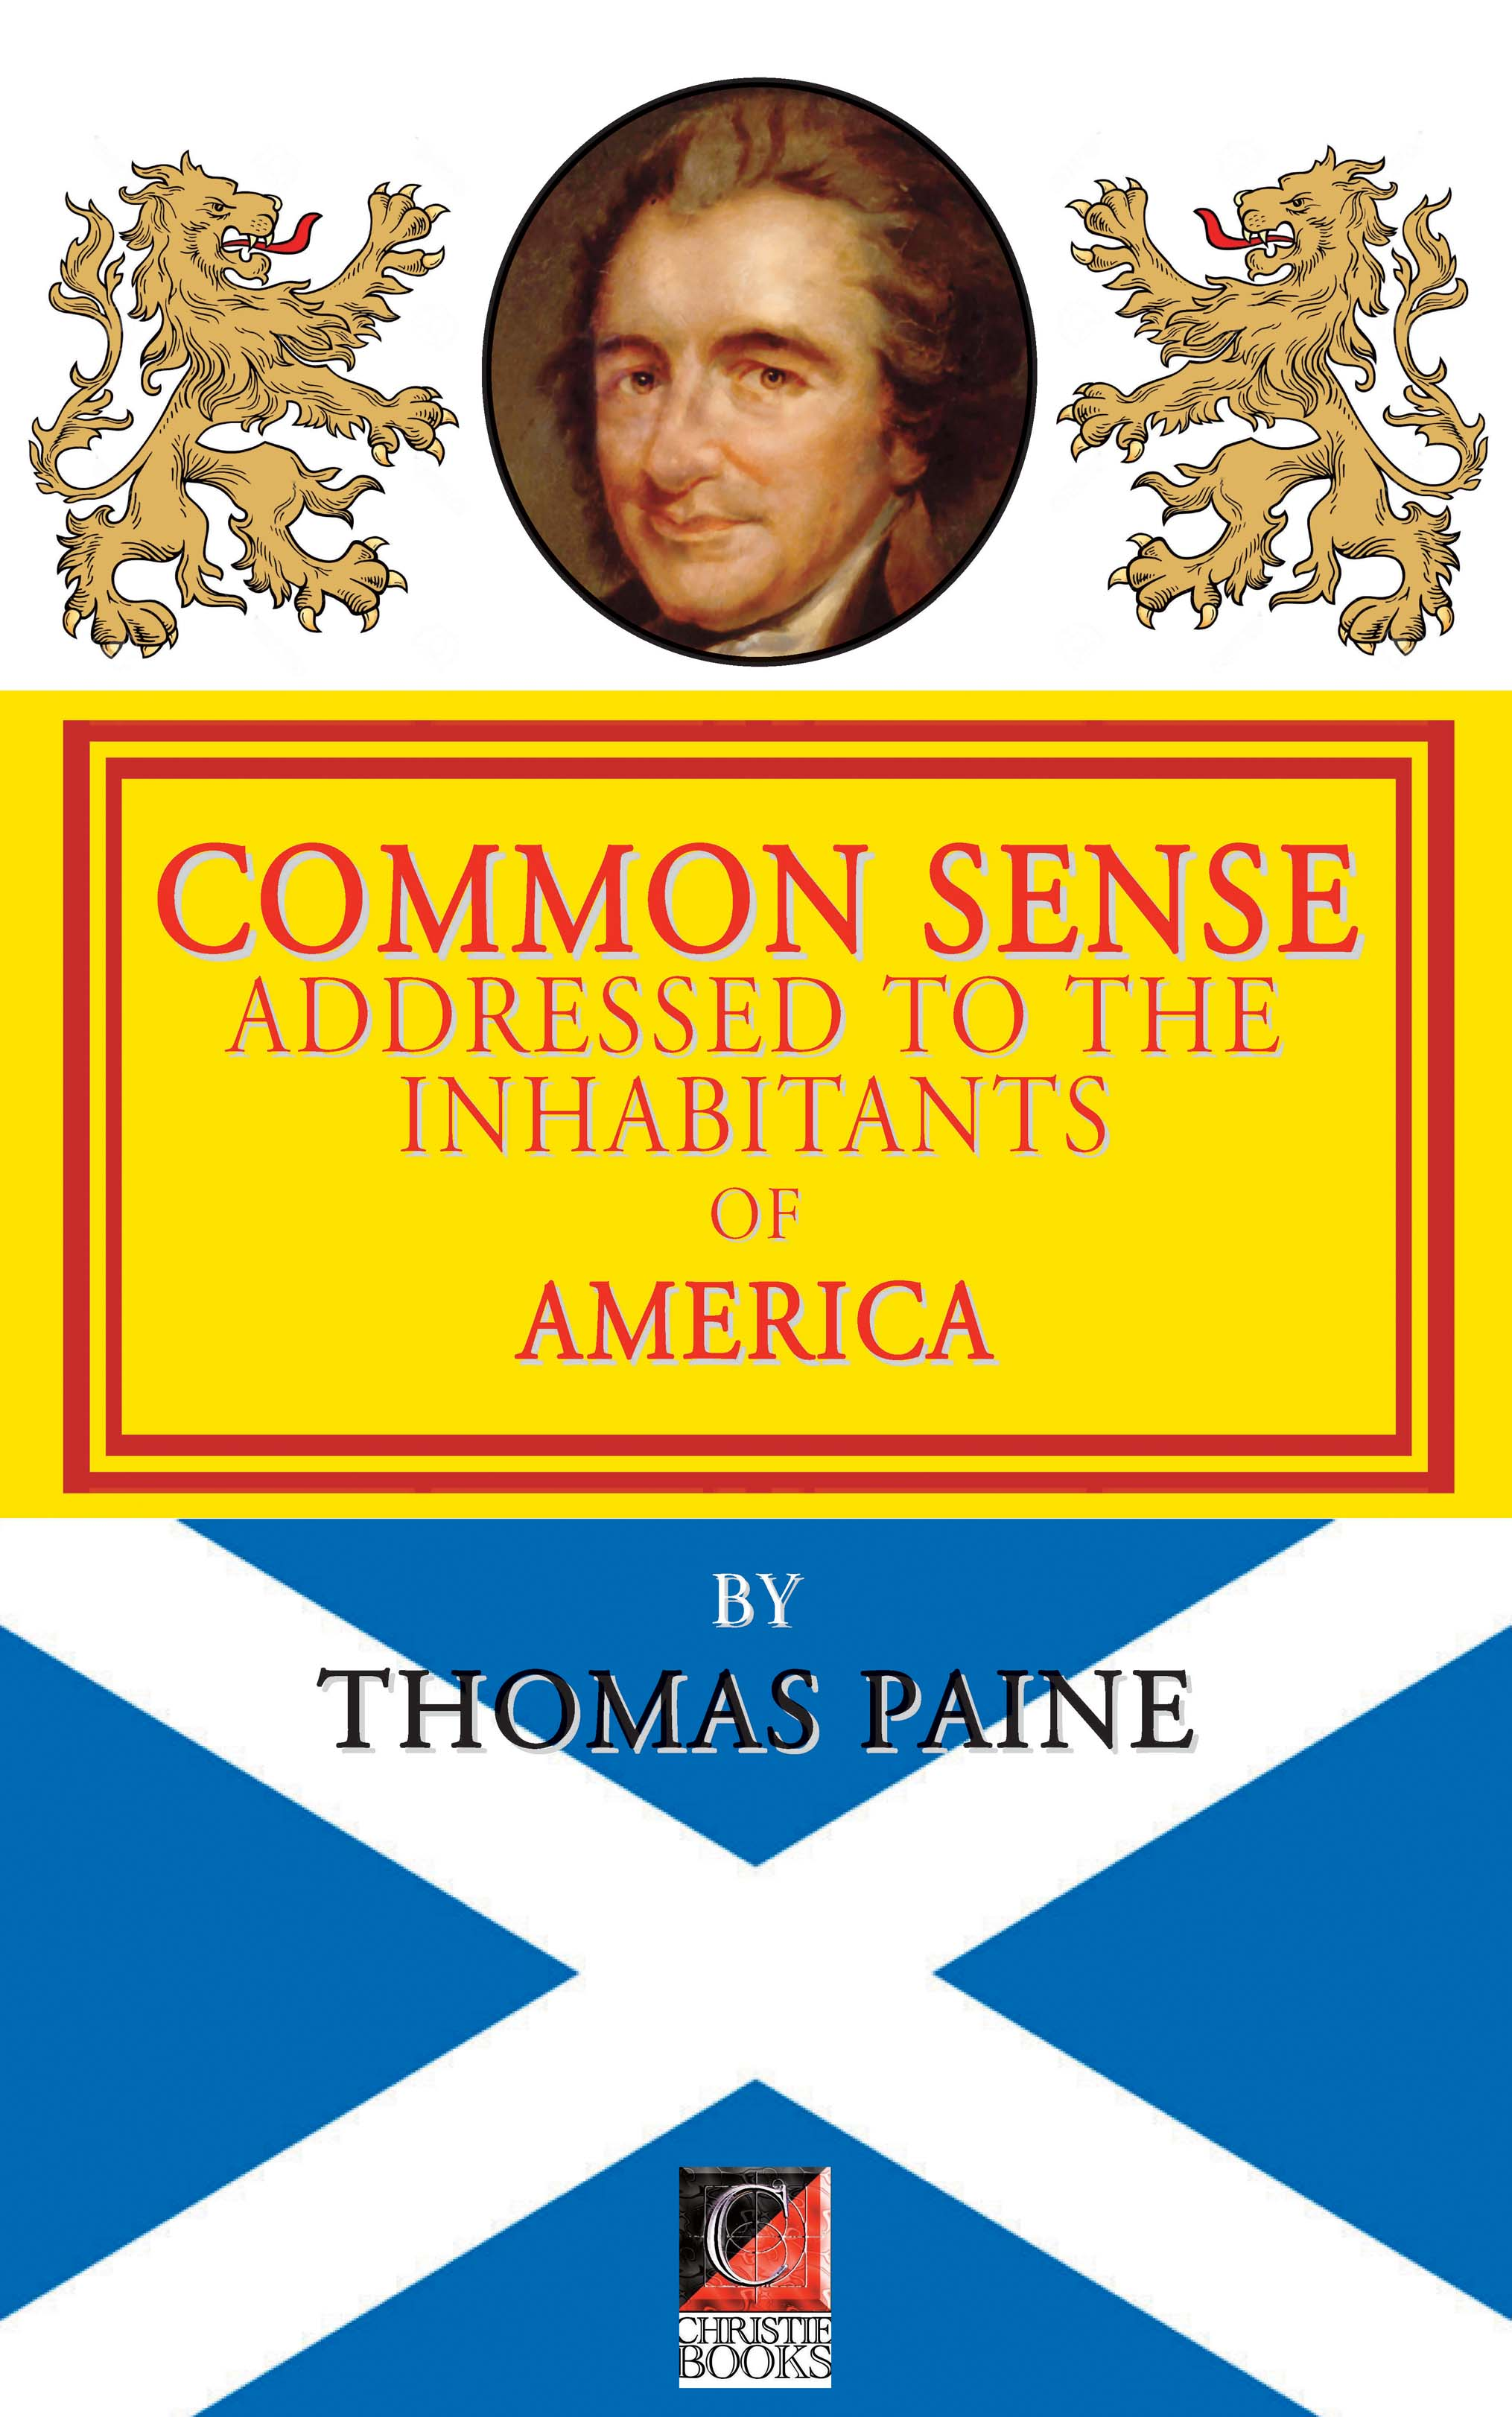 thomas paines common sense is an argumentative essay In common sense, thomas paine used several arguments to convince his   another argument that paine used to convince the colonists to rebel against.